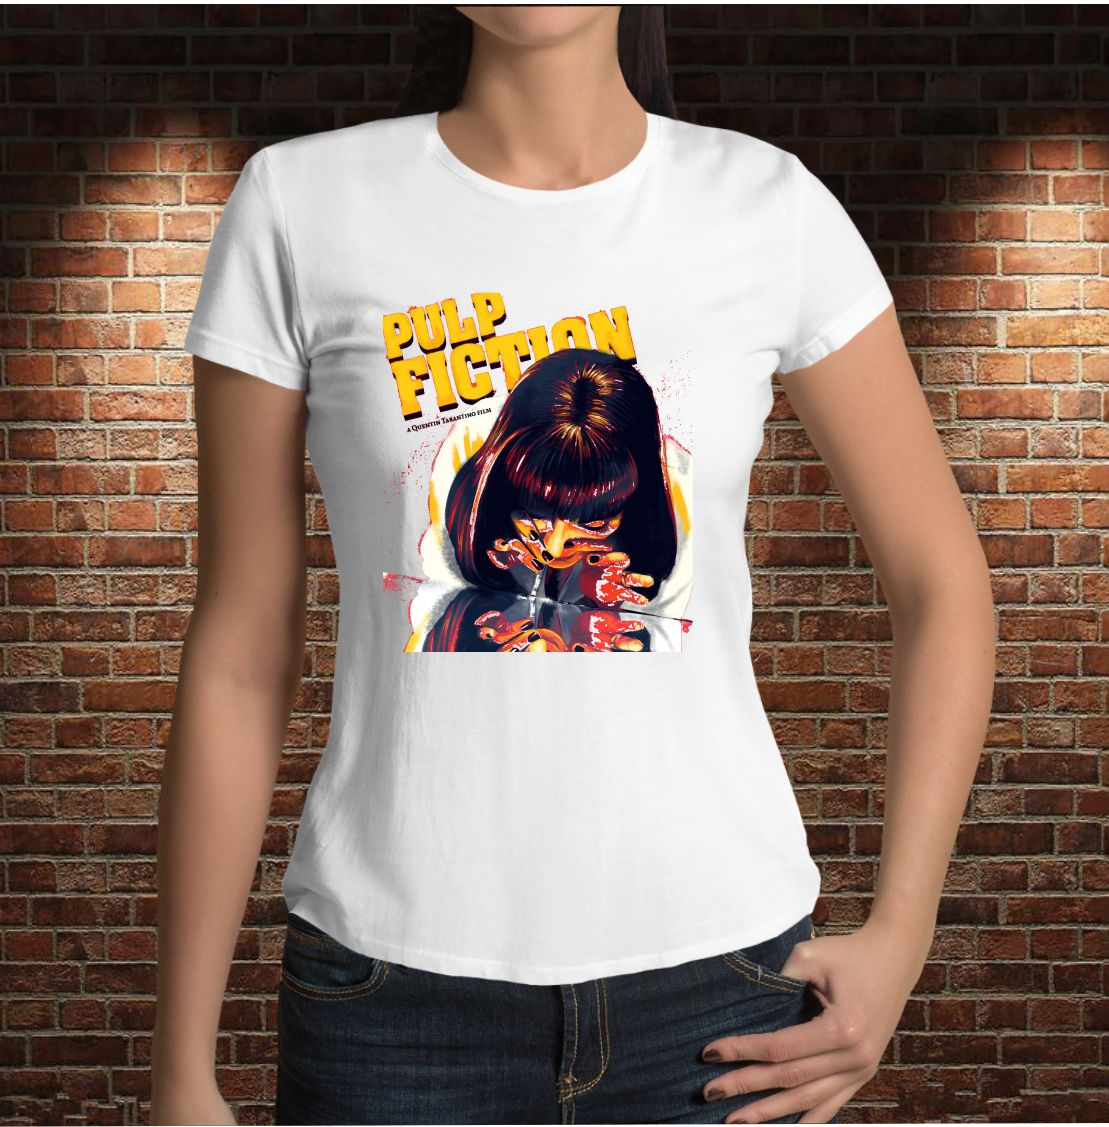 CAMISETA PULP FICTION. UMA THURMAN.